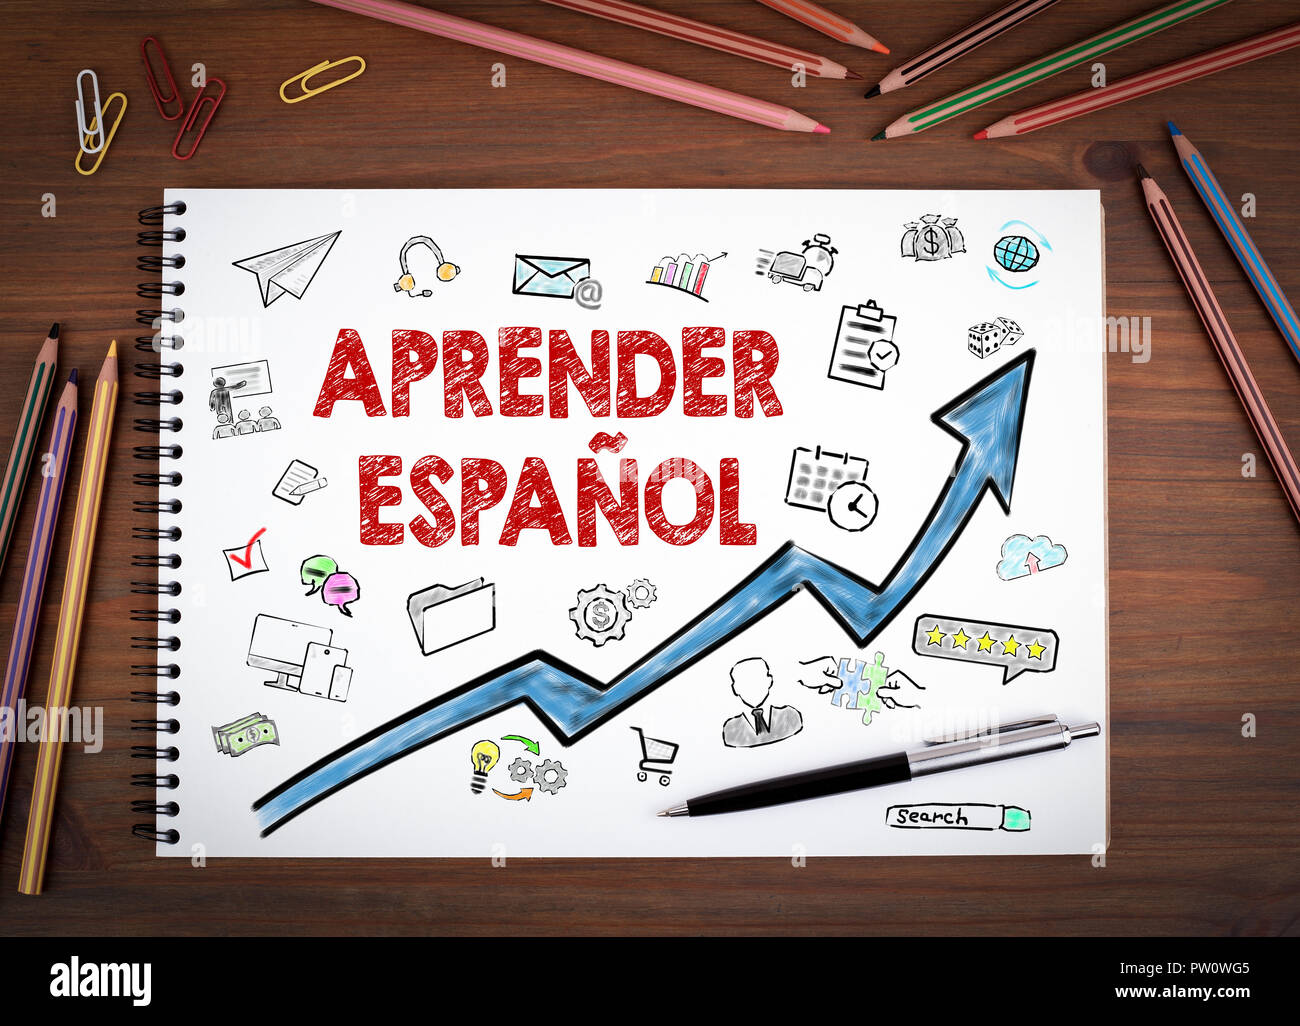 Learn Spanish, Education and Business Concept - Stock Image